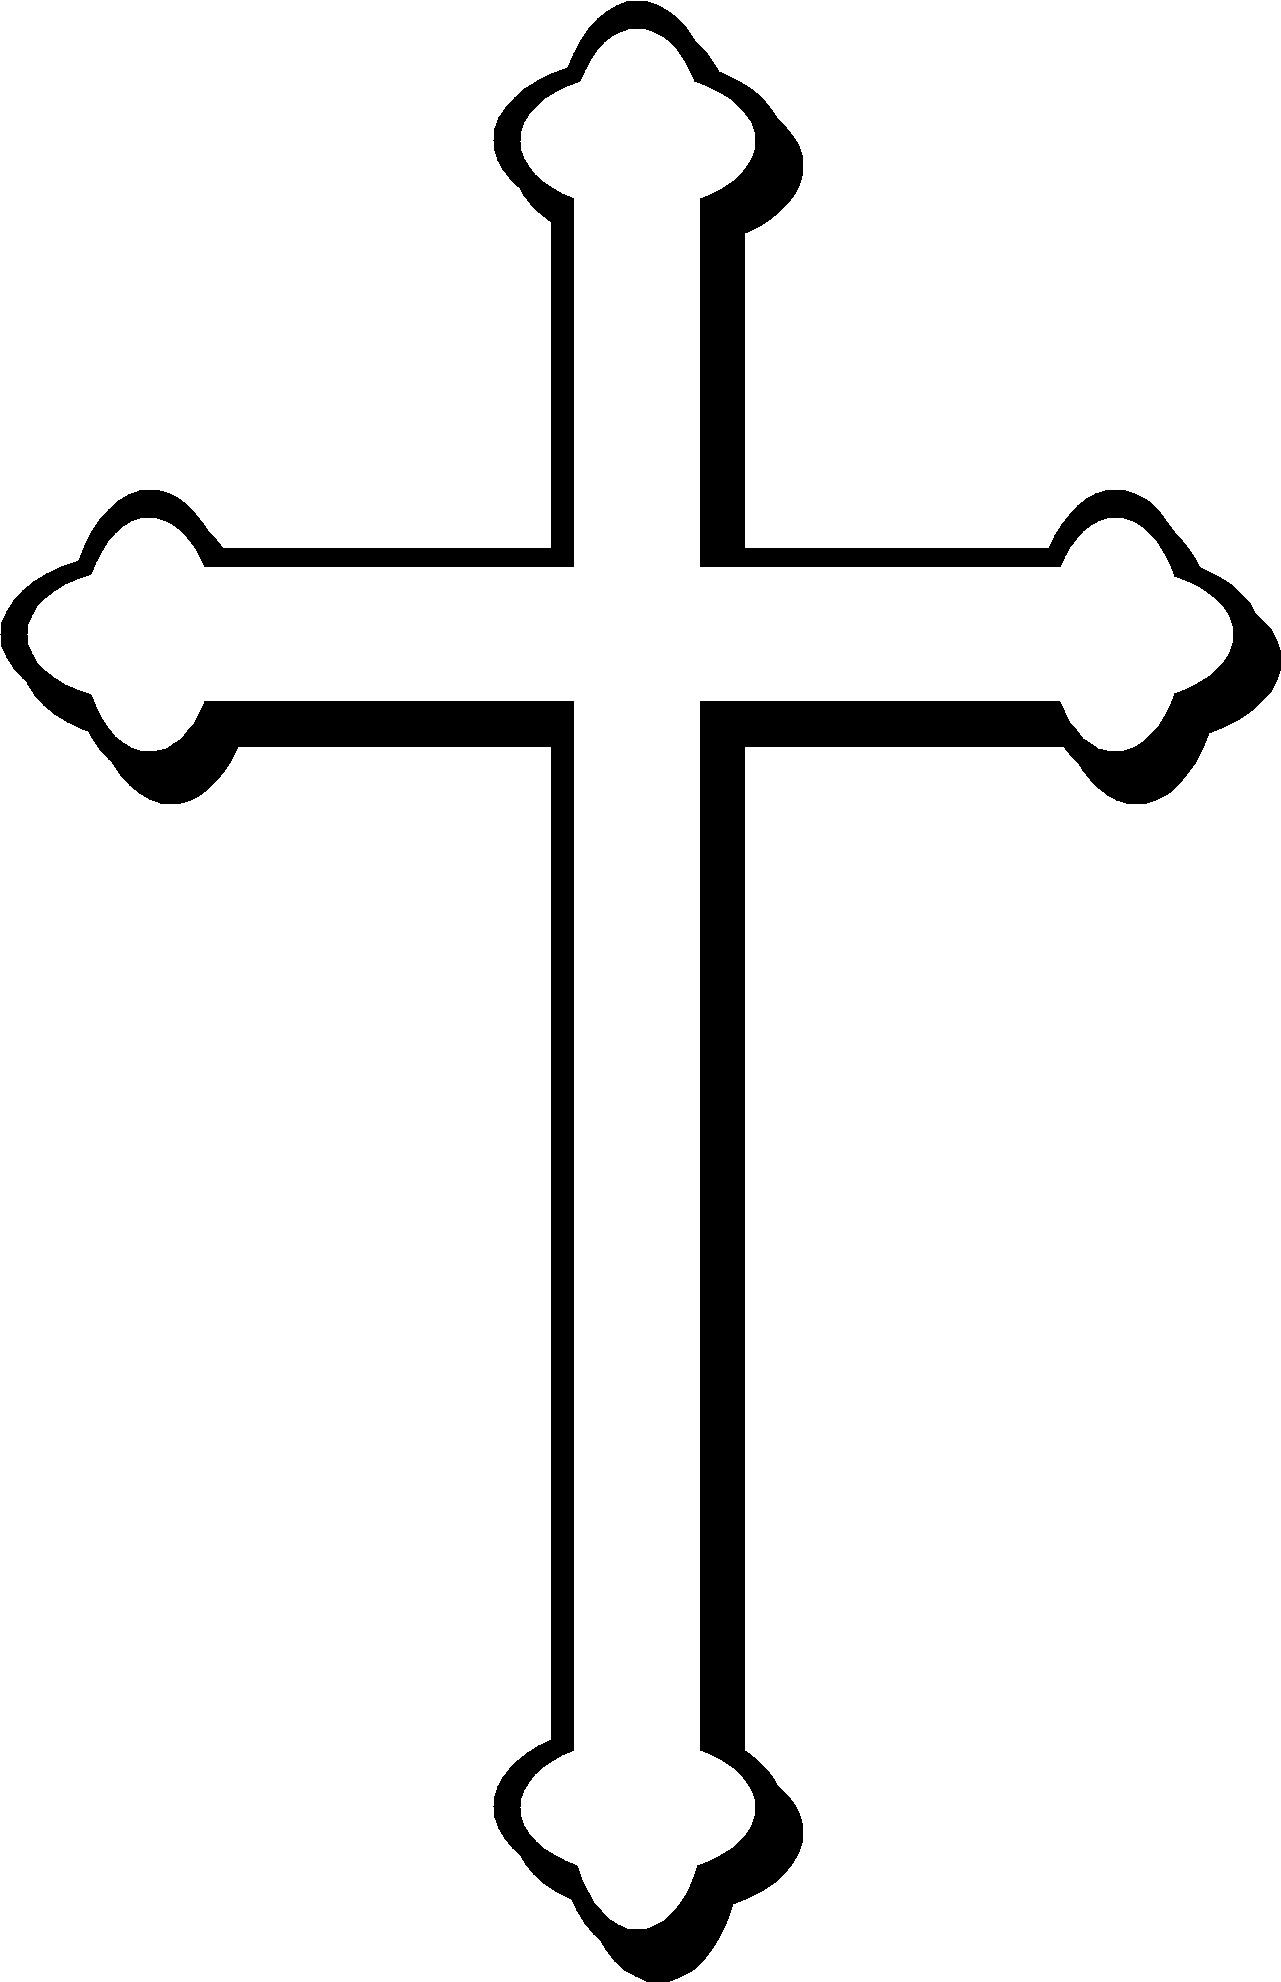 clipart of jesus on the cross clipart best crosses crosses rh pinterest com jesus died on the cross clipart jesus died on the cross clipart